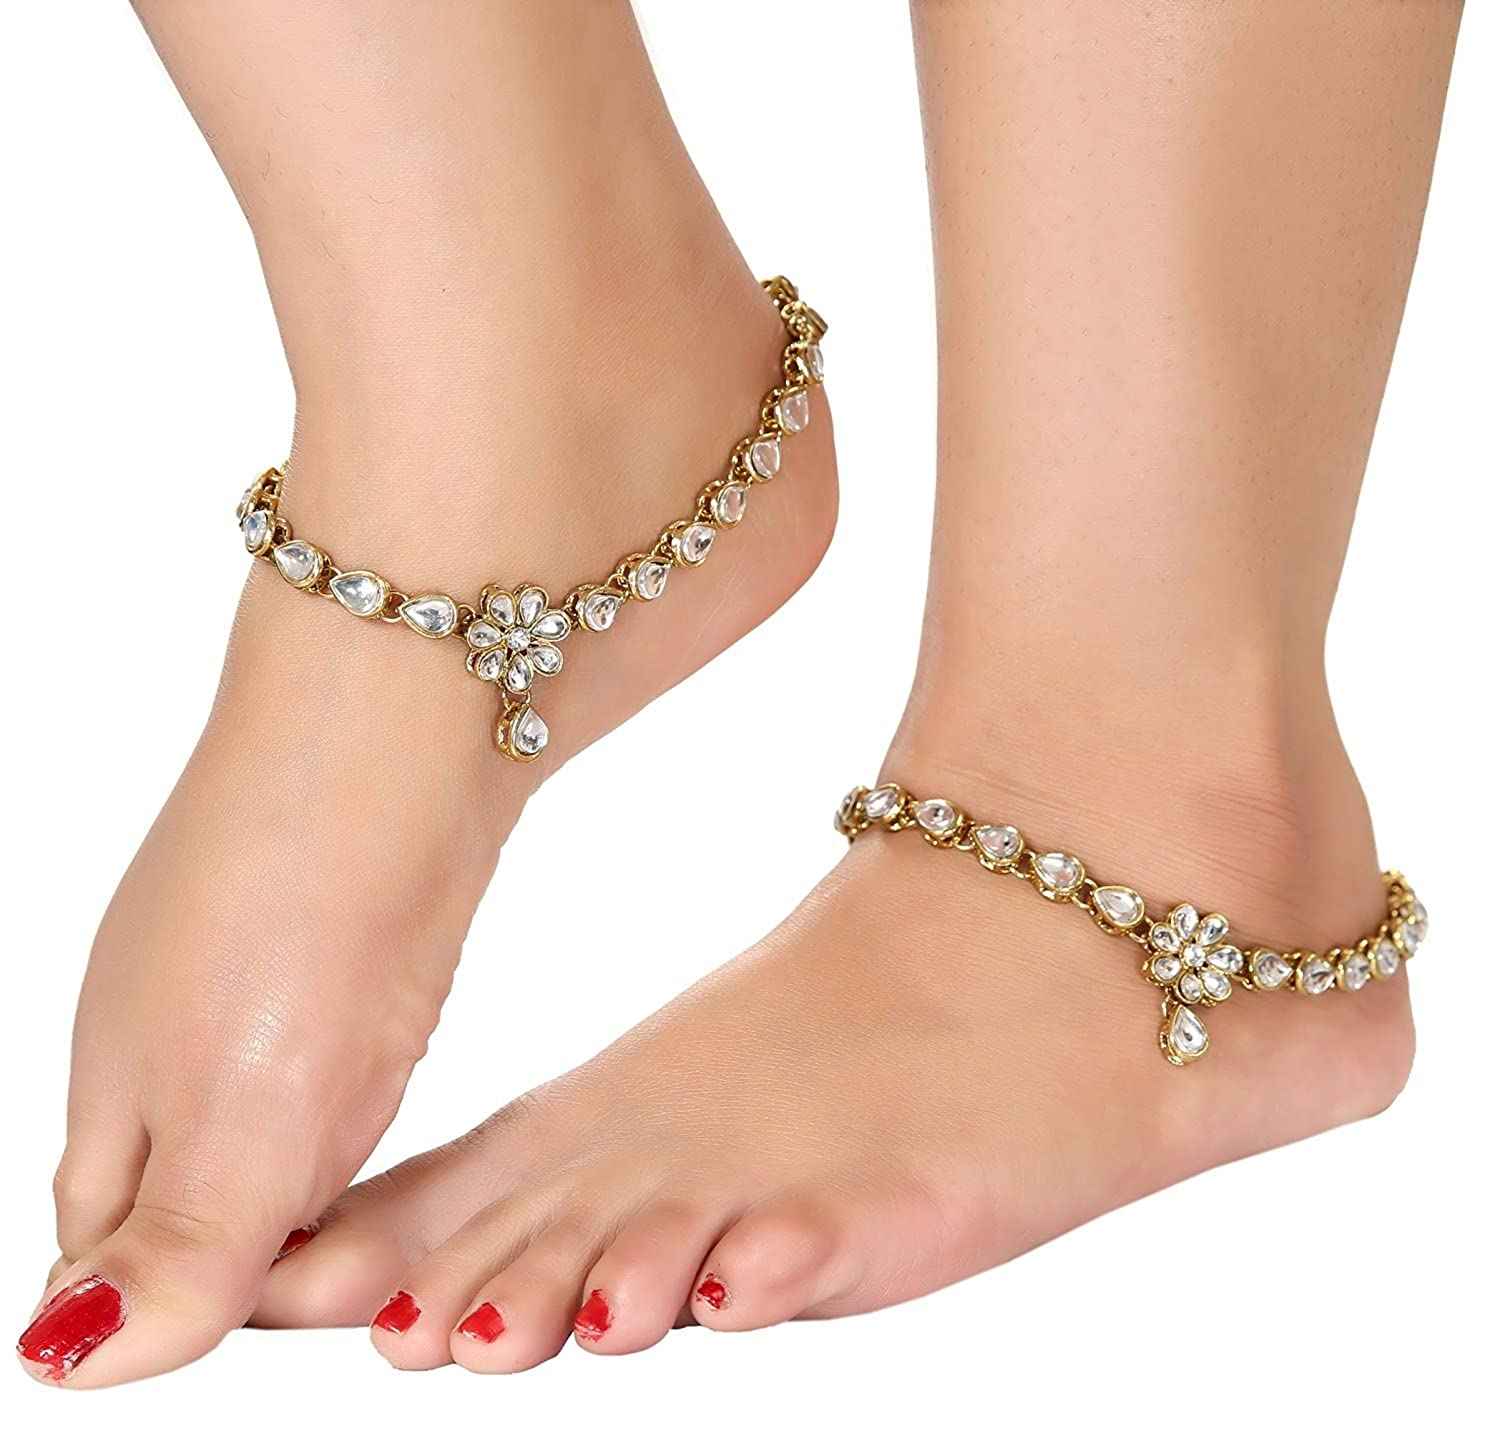 churchill pinterest selected plated anklet flower by jewelbox on the online antique anklets sultana awesome syeda patel gold pin kundan anna of pair products